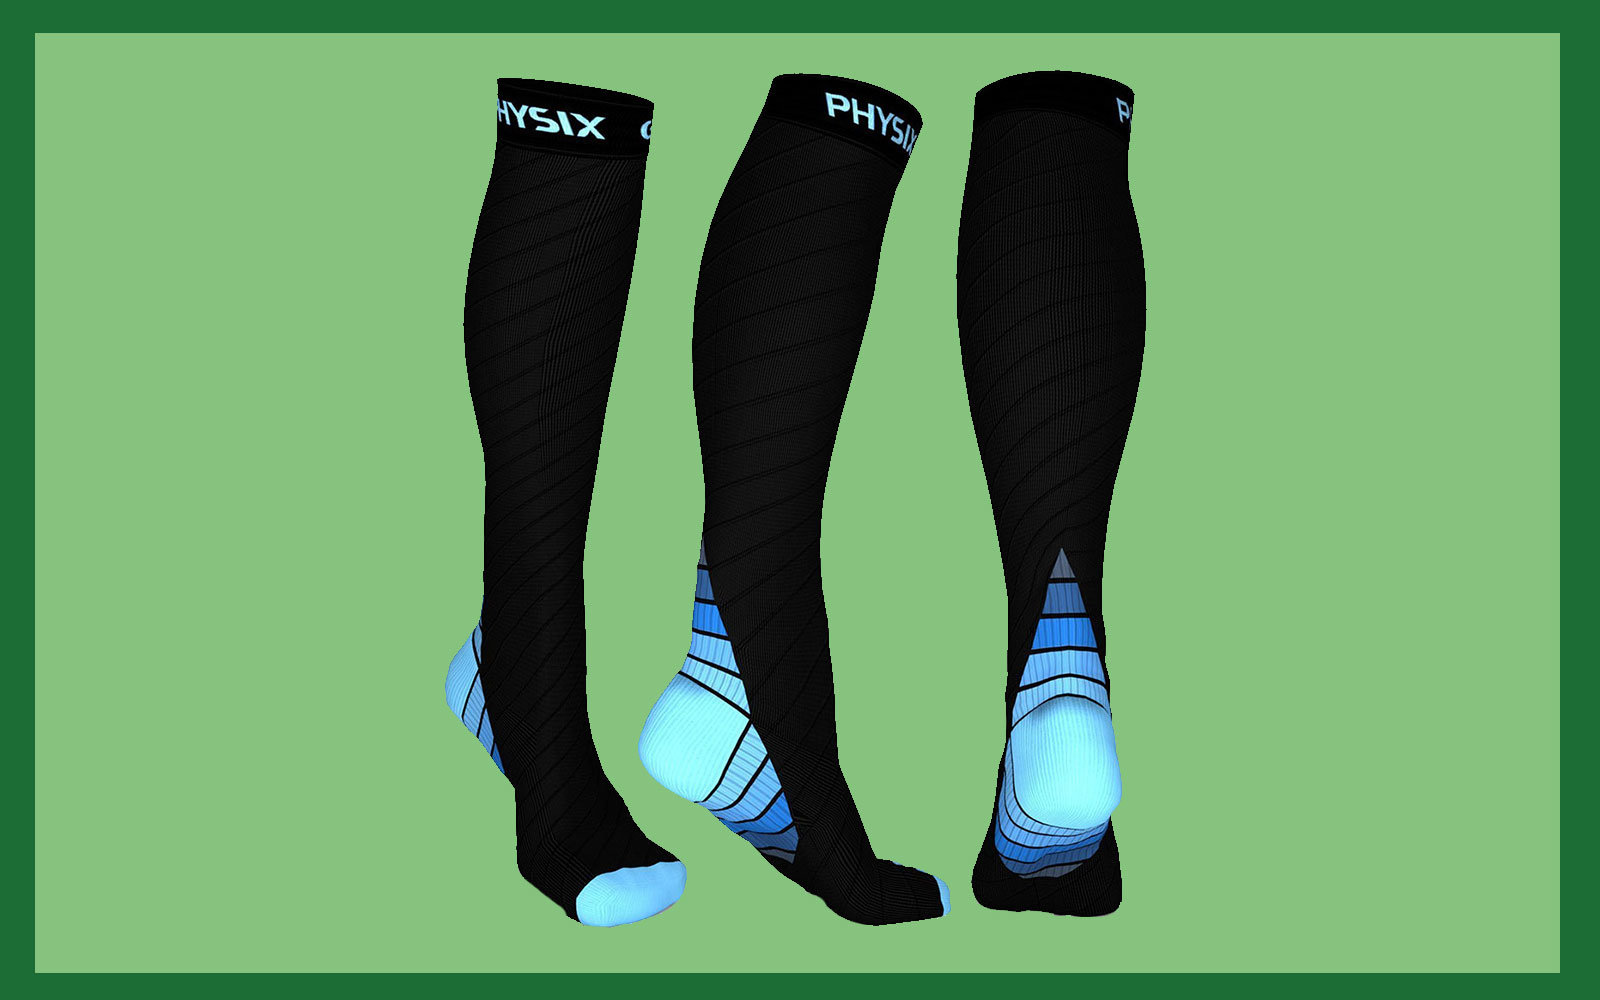 These Physix Gear Sport Compression Socks Save My Feet on Flights